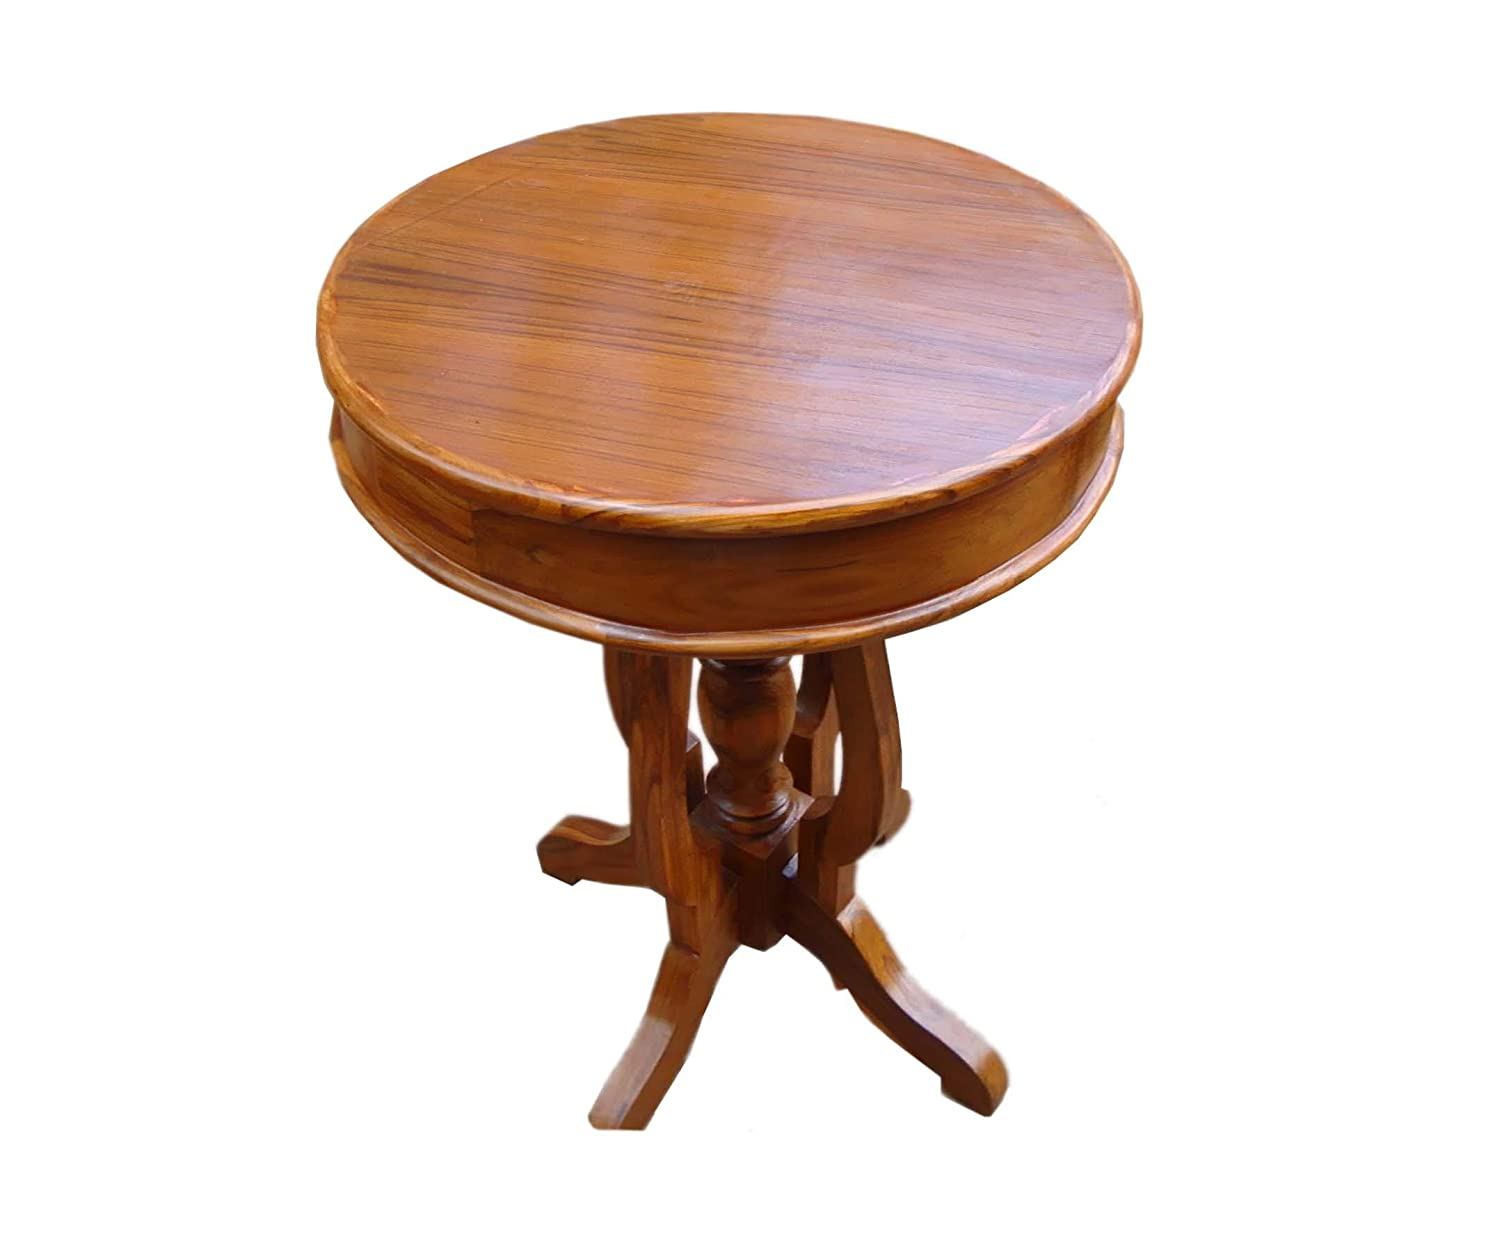 Solid Teak Wood Decorative End Table/Side Table